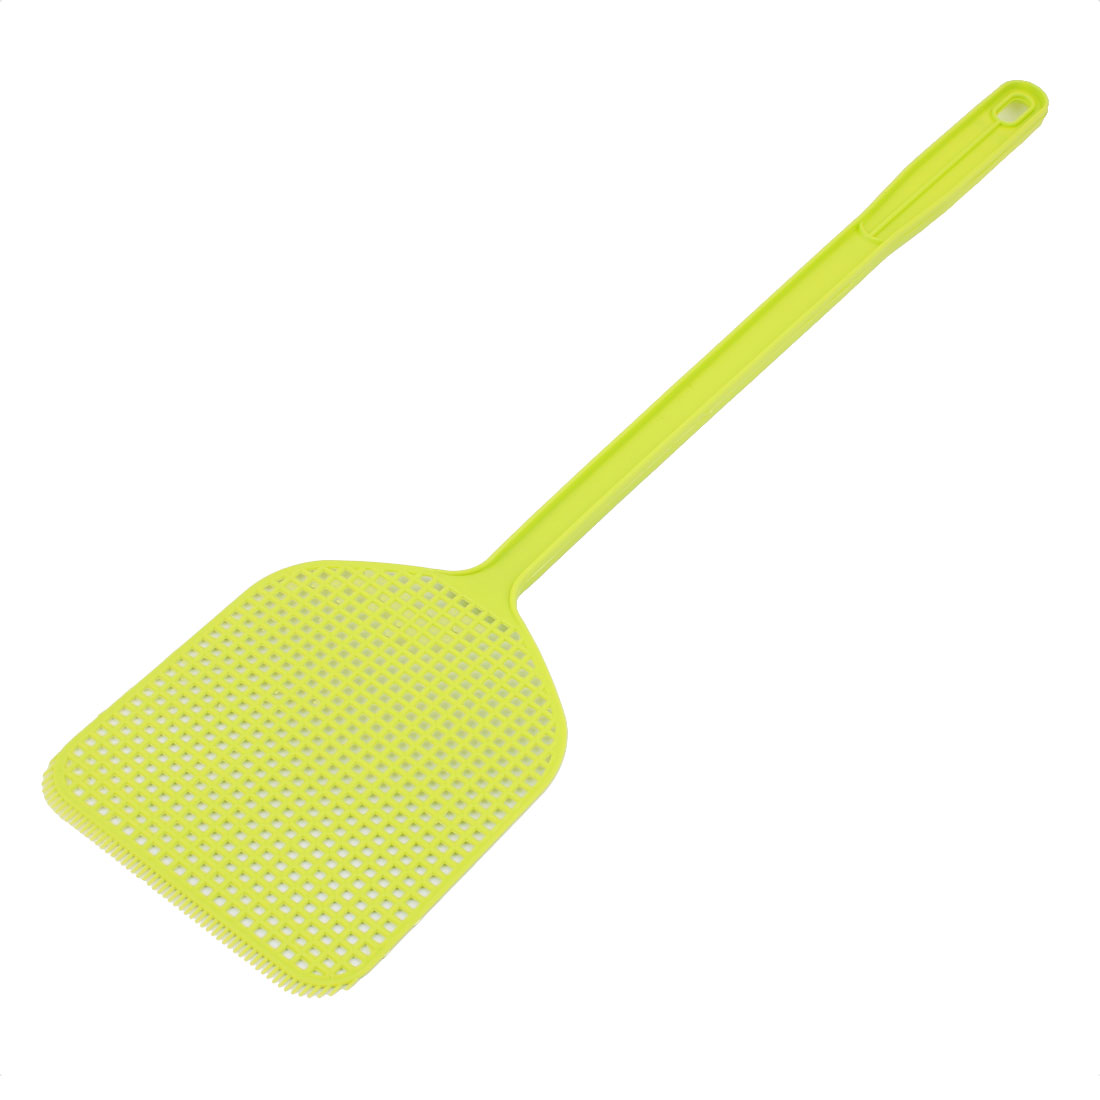 Plastic Fly Swatter Bug Mosquito Insect Wasps Killer Swat Catcher 44cm Green